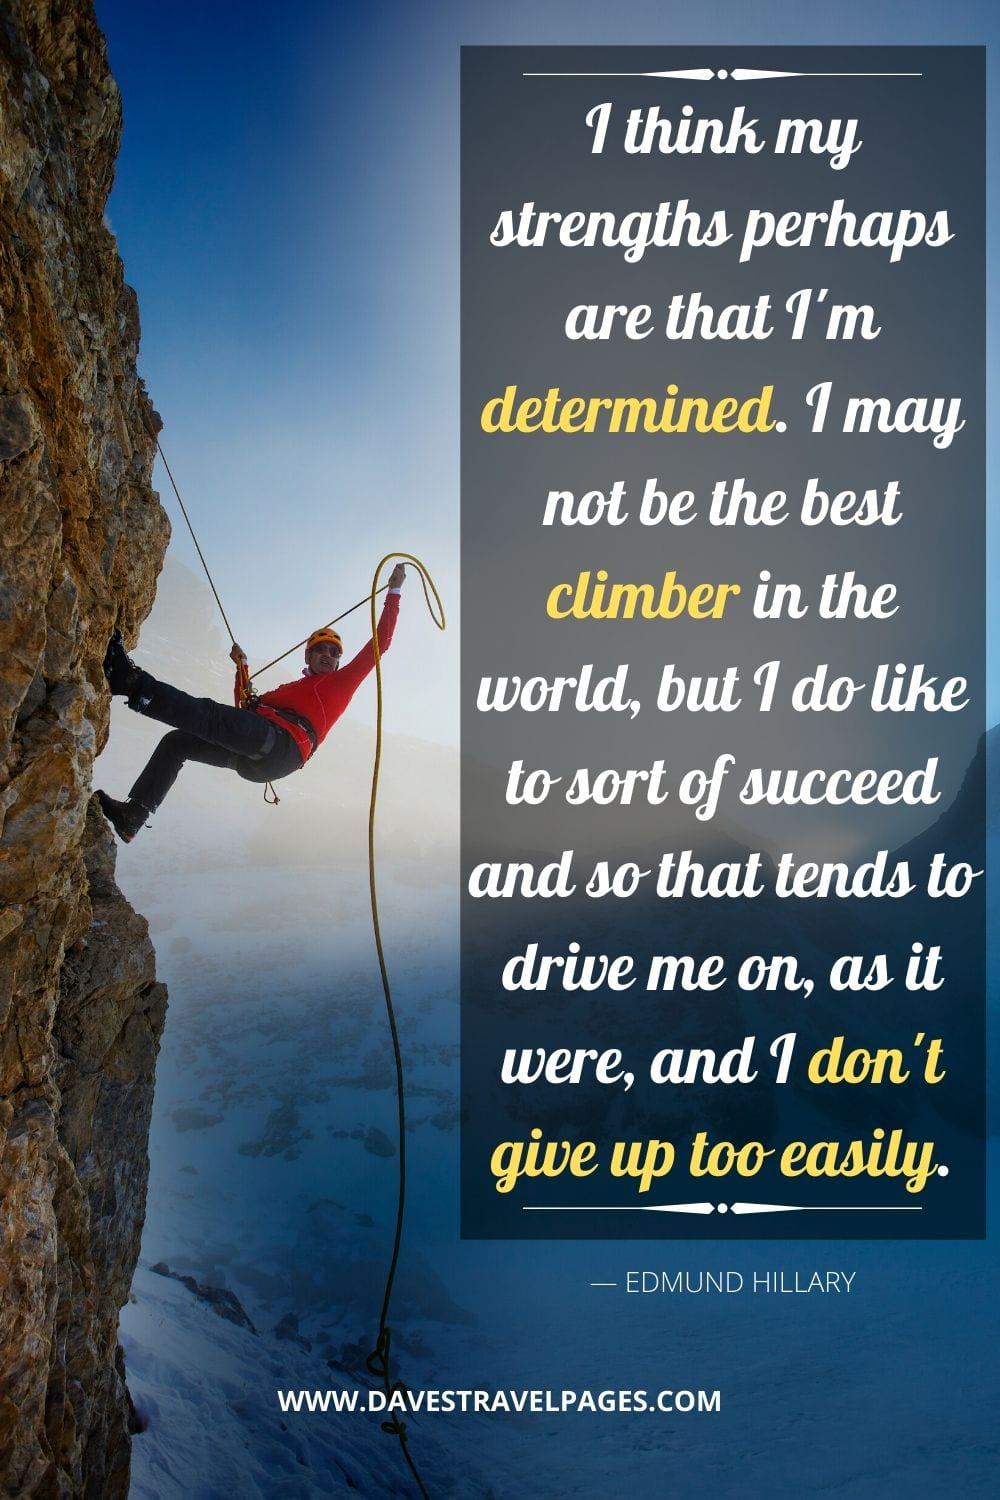 "Success and Motivation: ""I think my strengths perhaps are that I'm determined. I may not be the best climber in the world, but I do like to sort of succeed and so that tends to drive me on, as it were, and I don't give up too easily."""